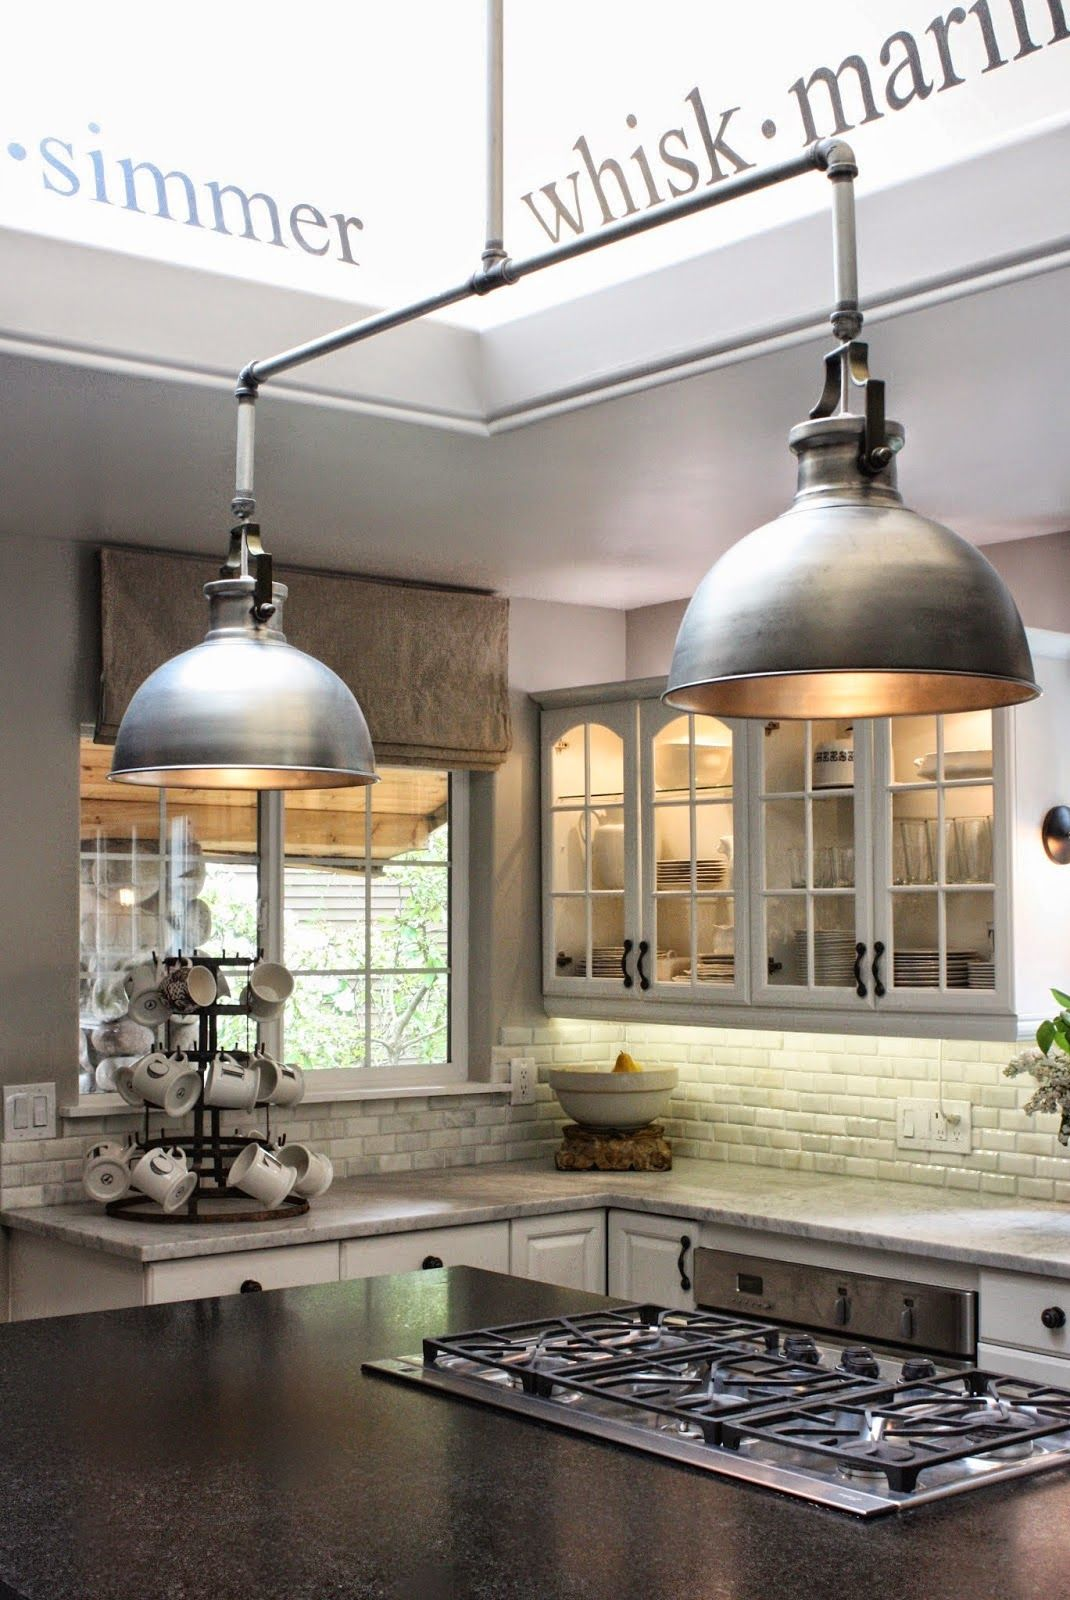 Industrial style kitchen island lighting operation kitchen update industrial style kitchen island lighting arubaitofo Image collections